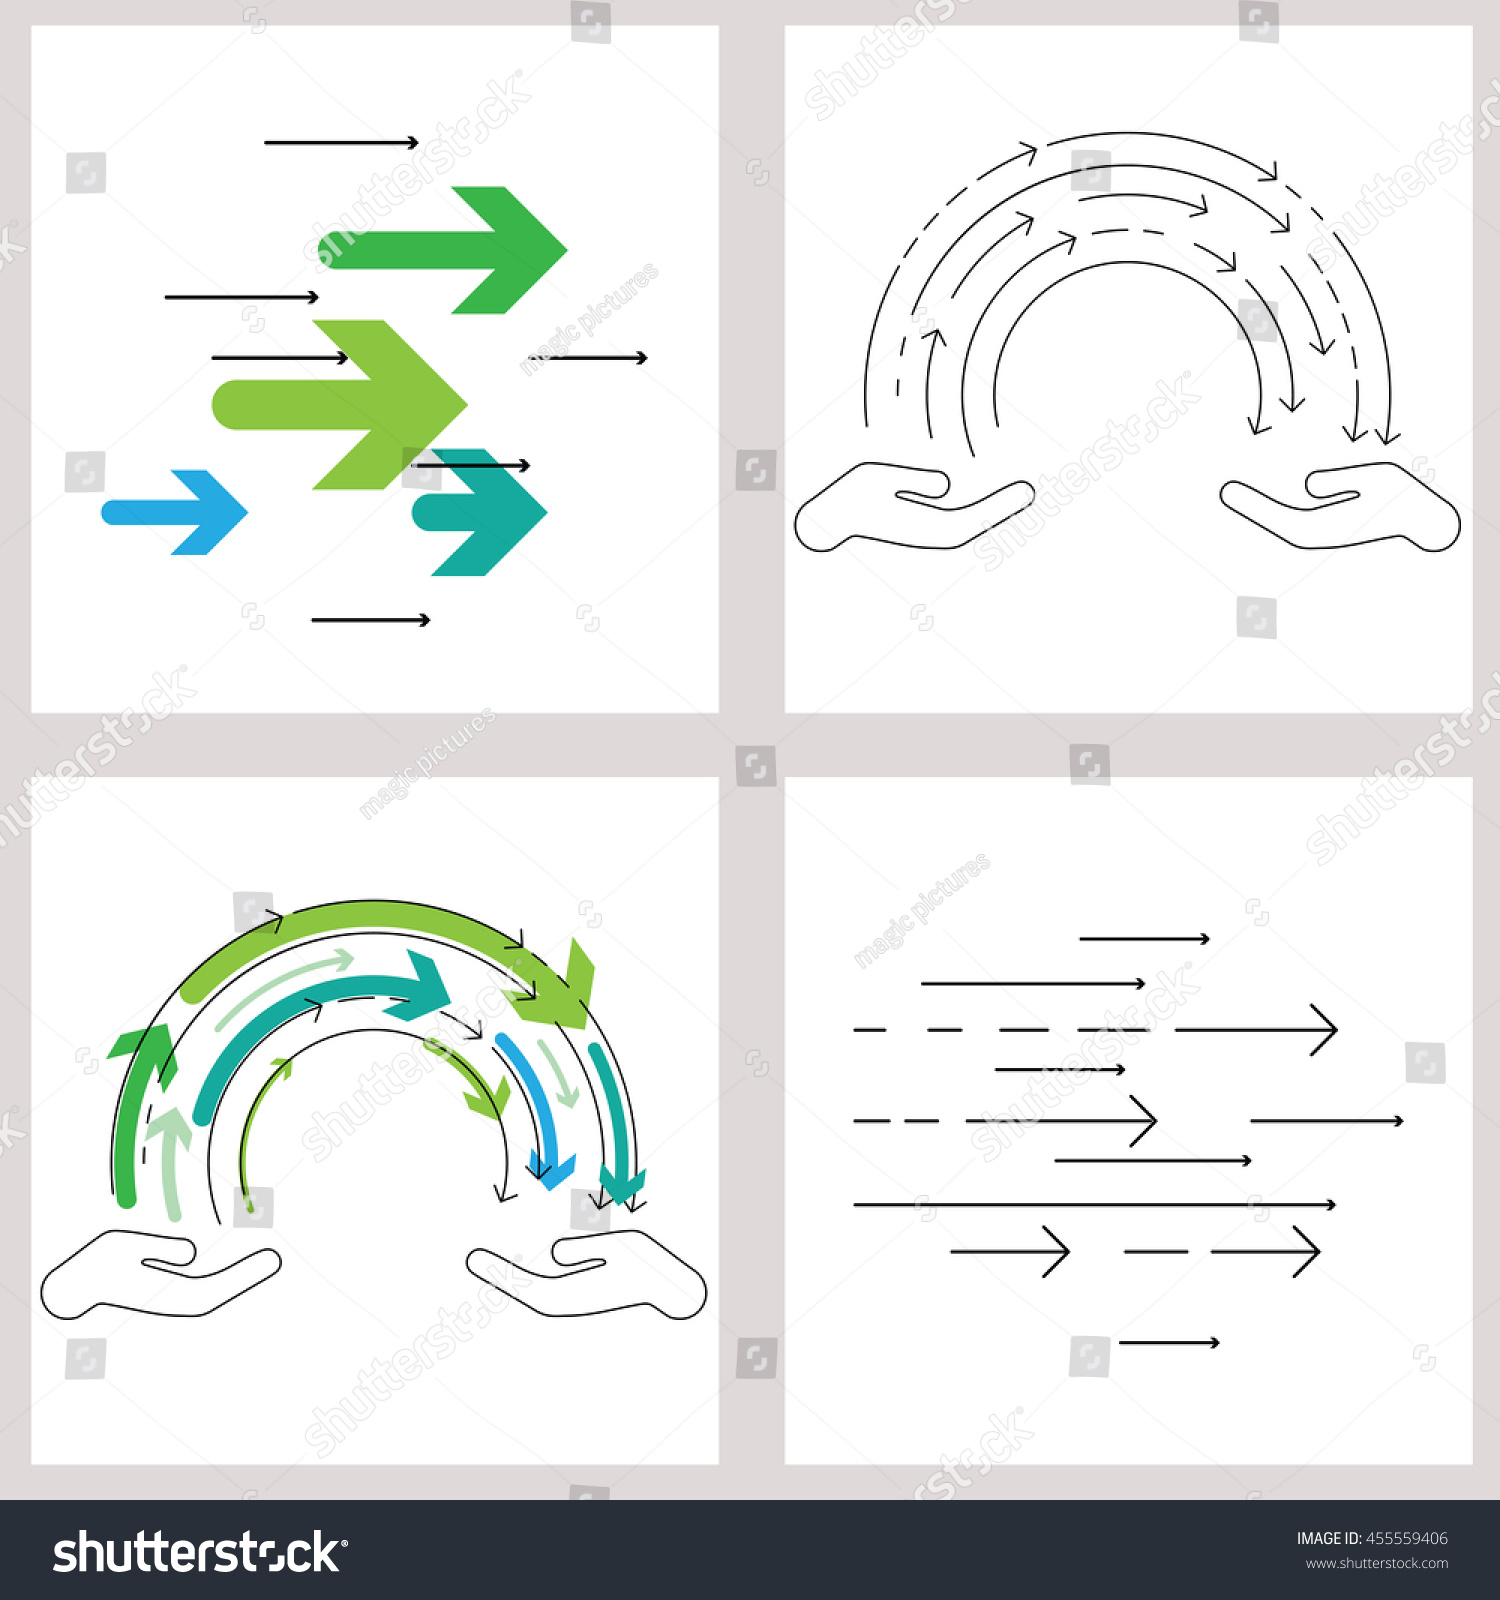 Vector illustration thin line flat design stock vector 455559406 vector illustration thin line flat design for knowledge exchange concept with two hands and flow biocorpaavc Image collections